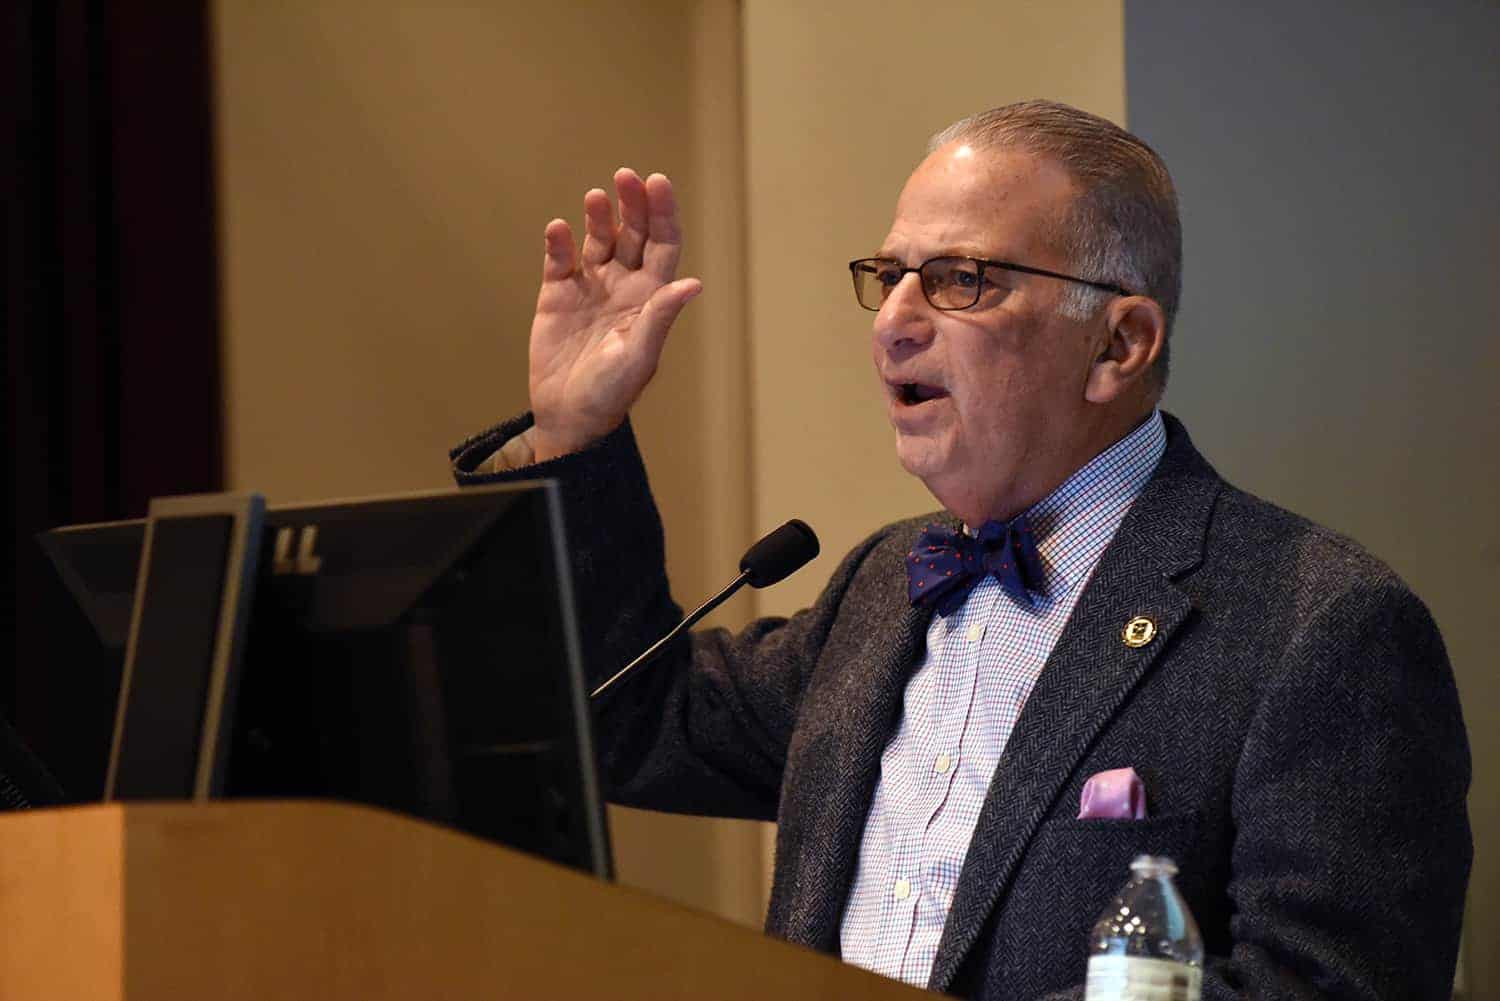 Hal Kushner, M.D., recounted his five and a half years as a prisoner of war during the Vietnam War to UAMS faculty, staff and students Feb. 7.